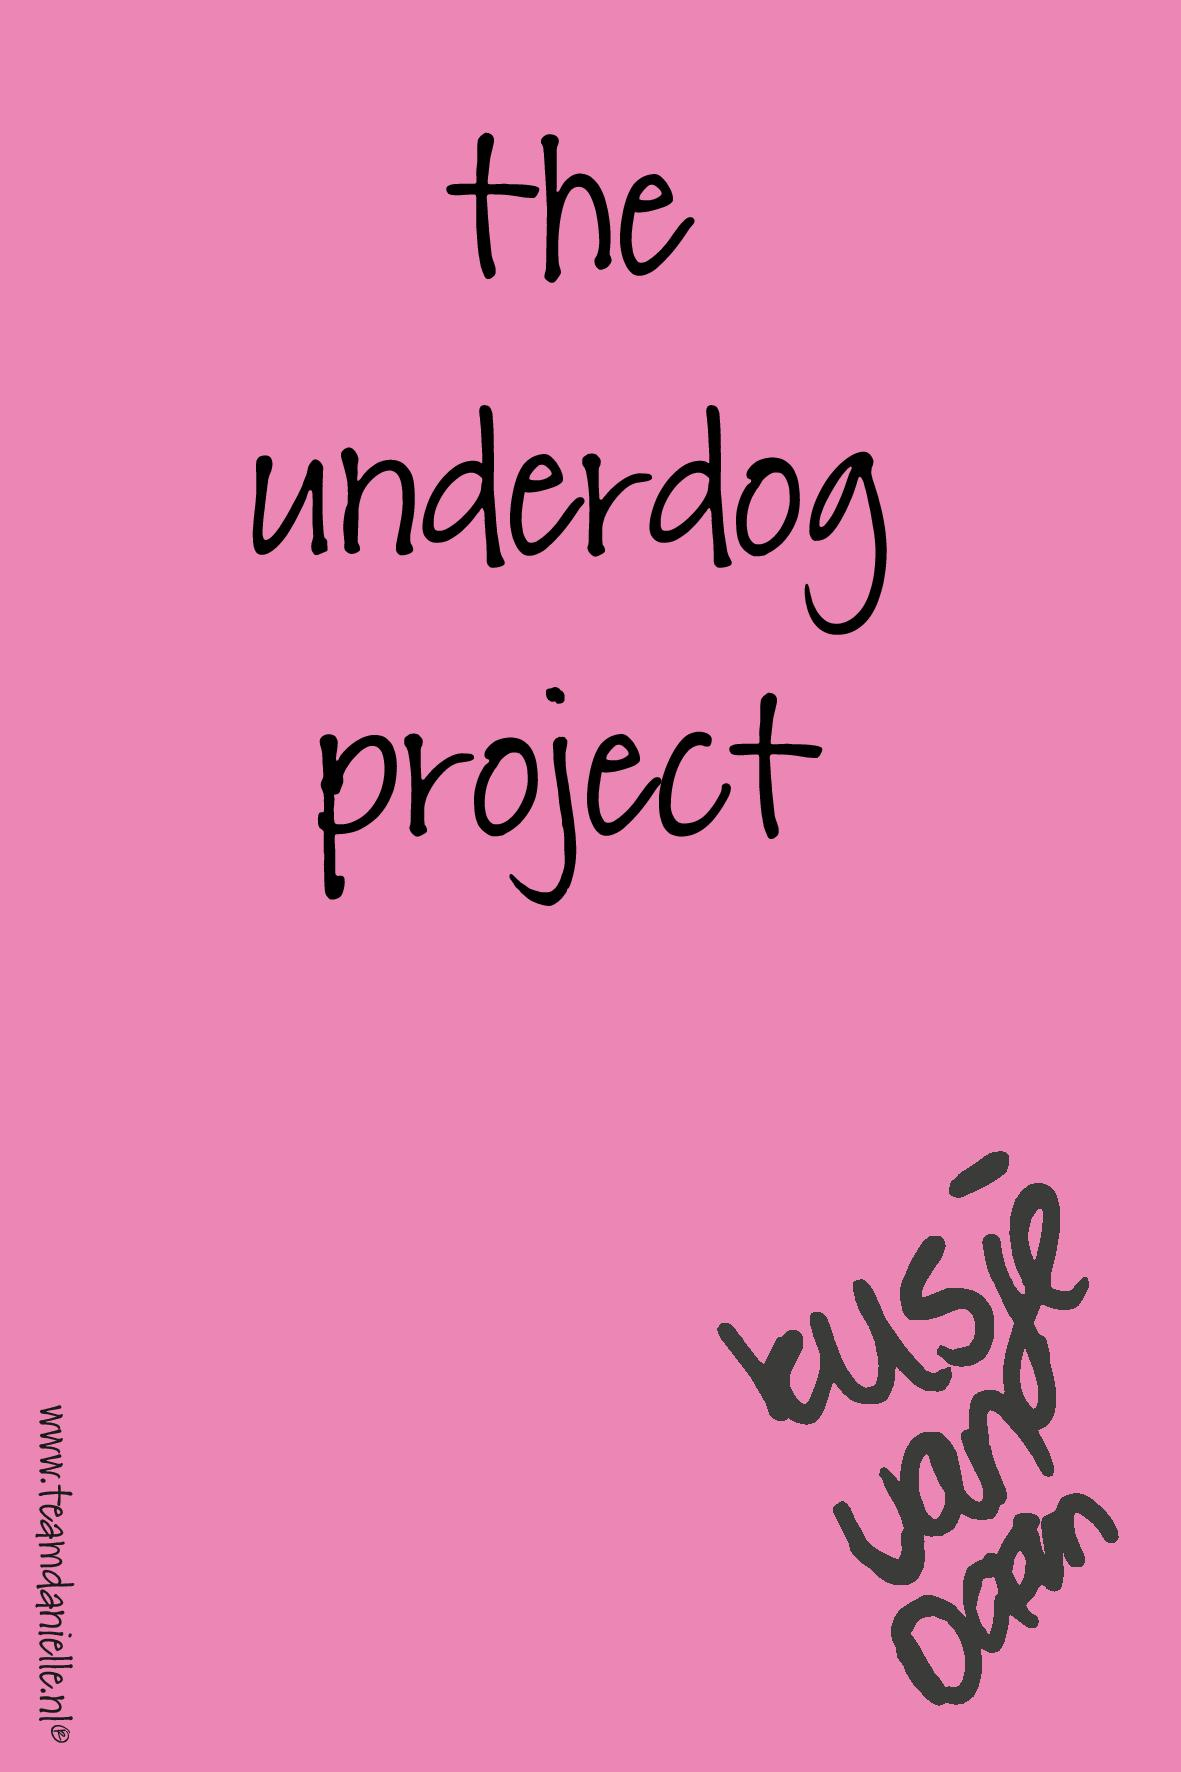 Kusje-180731-m-the underdog project